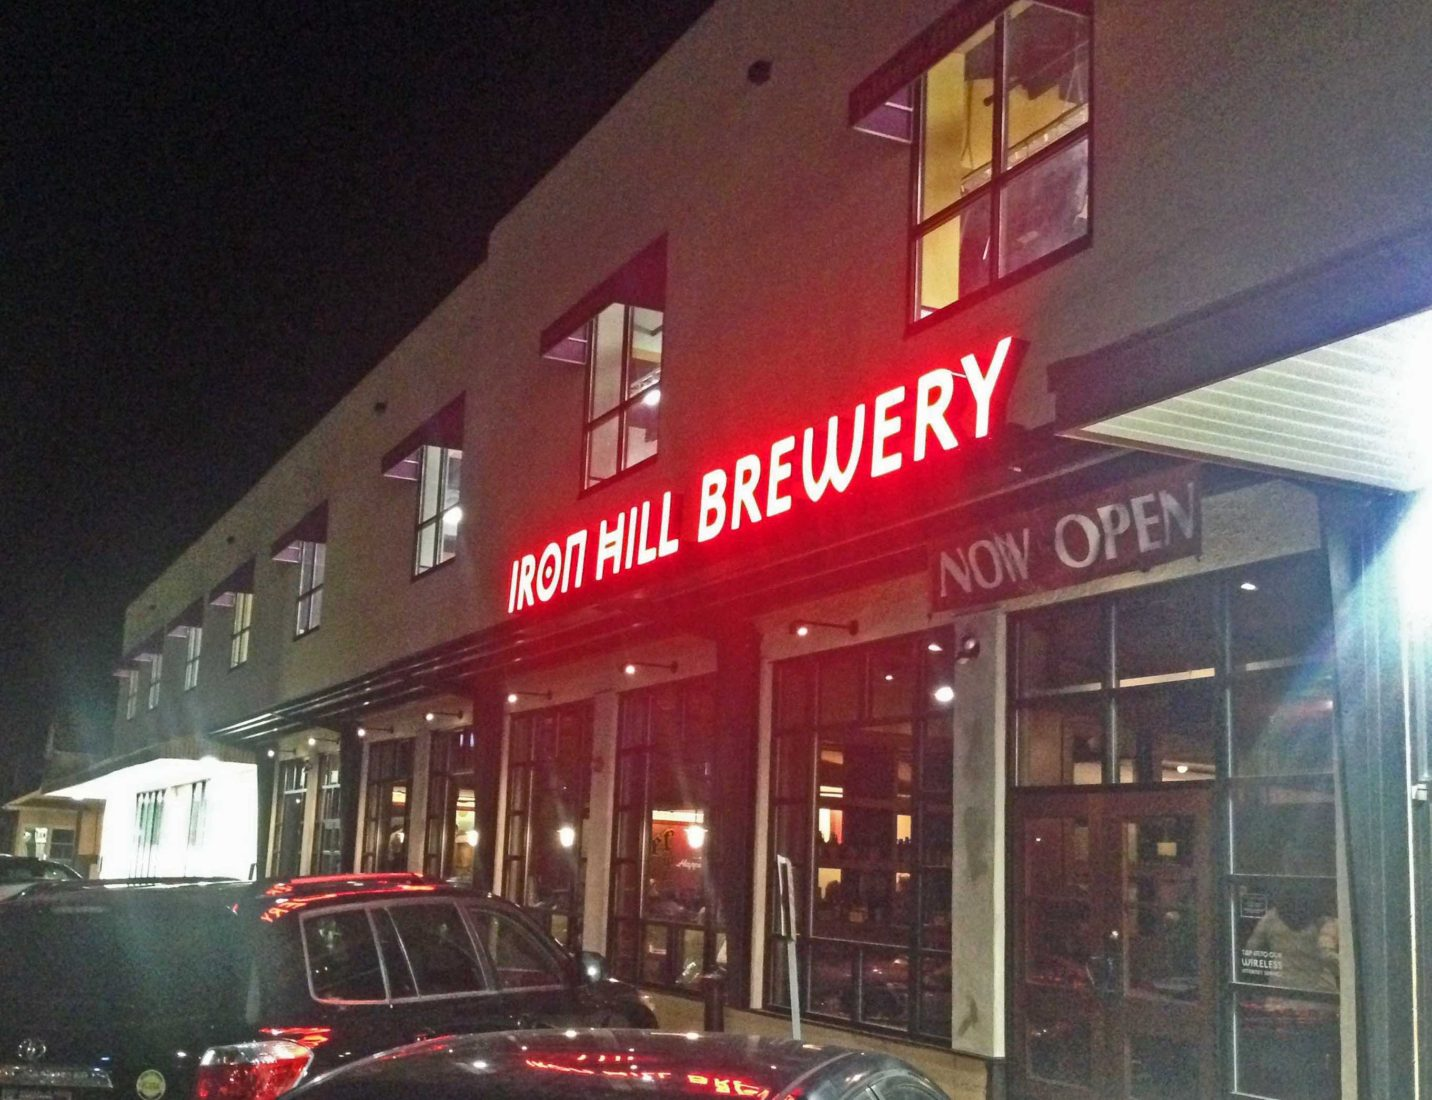 223. Iron Hill Brewery, Ardmore PA 2015